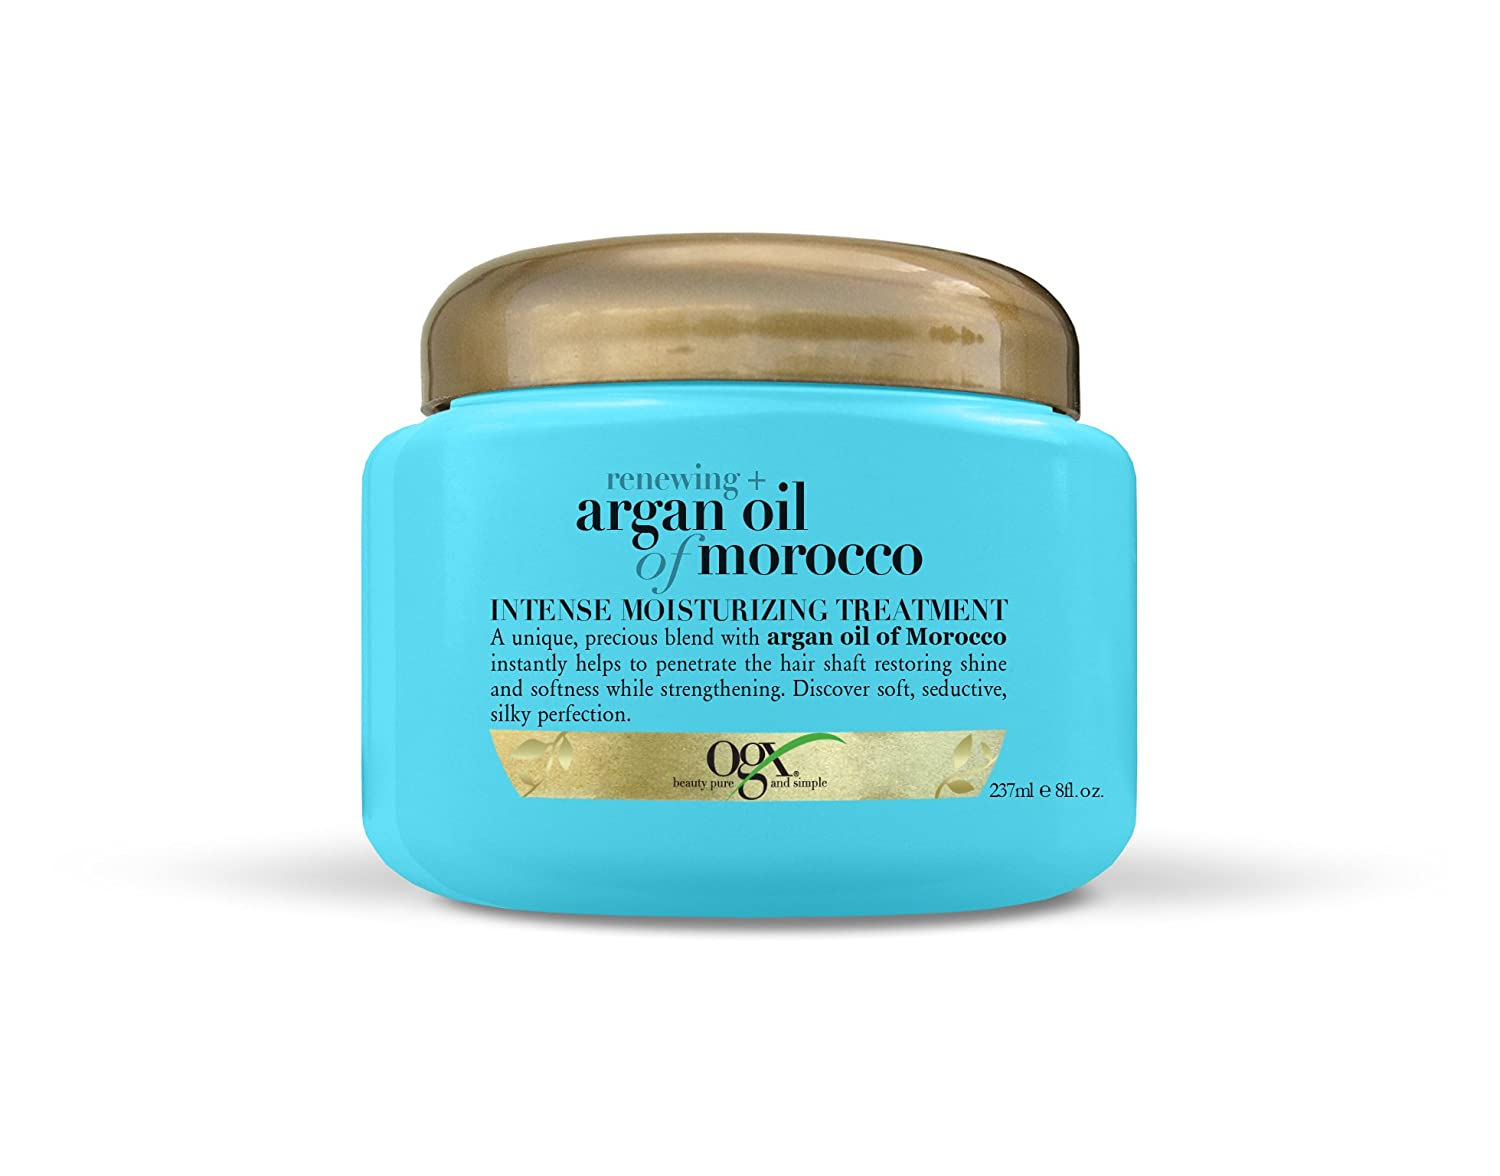 Organix Moroccan Argan Oil Treatment 226g Jar (並行輸入品) B0048EY5S2